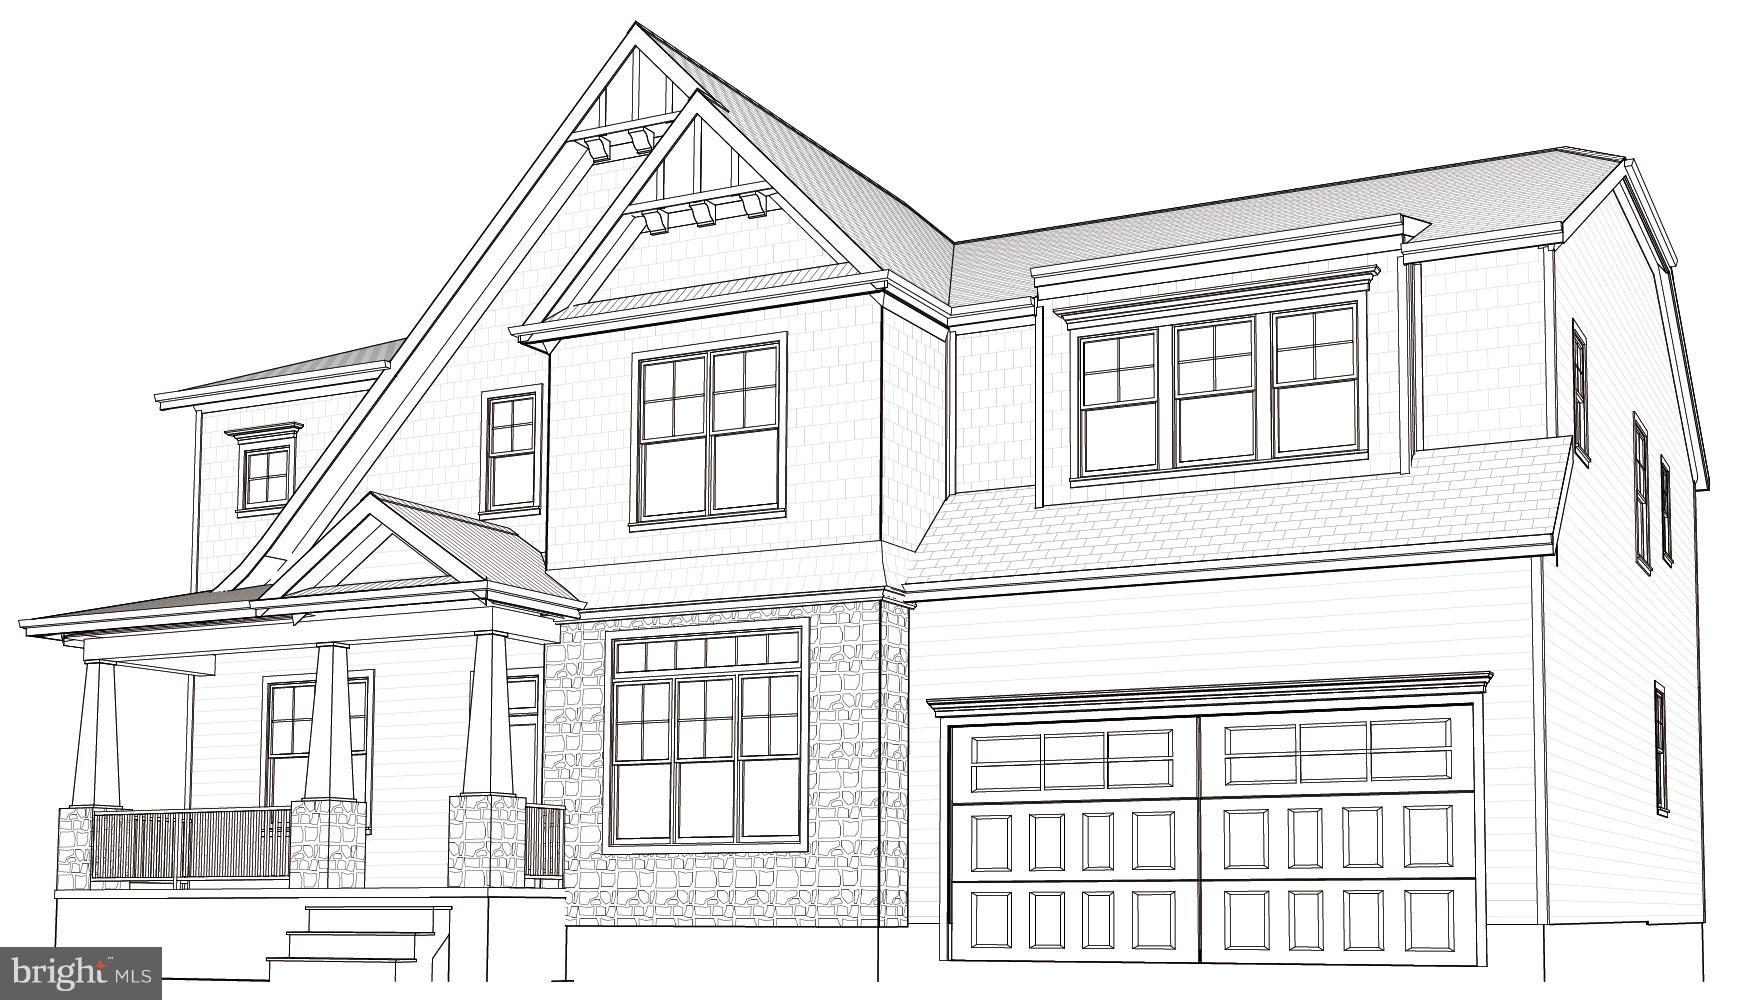 To-be-built! 4 new homes community. 2019 delivery. 6 floor plans available. Gallery kitchen, granite counter, stainless Appliances.Hardwood floor. Full custom luxury builder. Open floor plan. Each bedroom has own walk-in closet. Designer paint and finish. Optional finished bsmt, Deck, Balcony, and more upgrades options available. Lowest price new built in Fairfax. OFF SITE model open SAT/SUN!